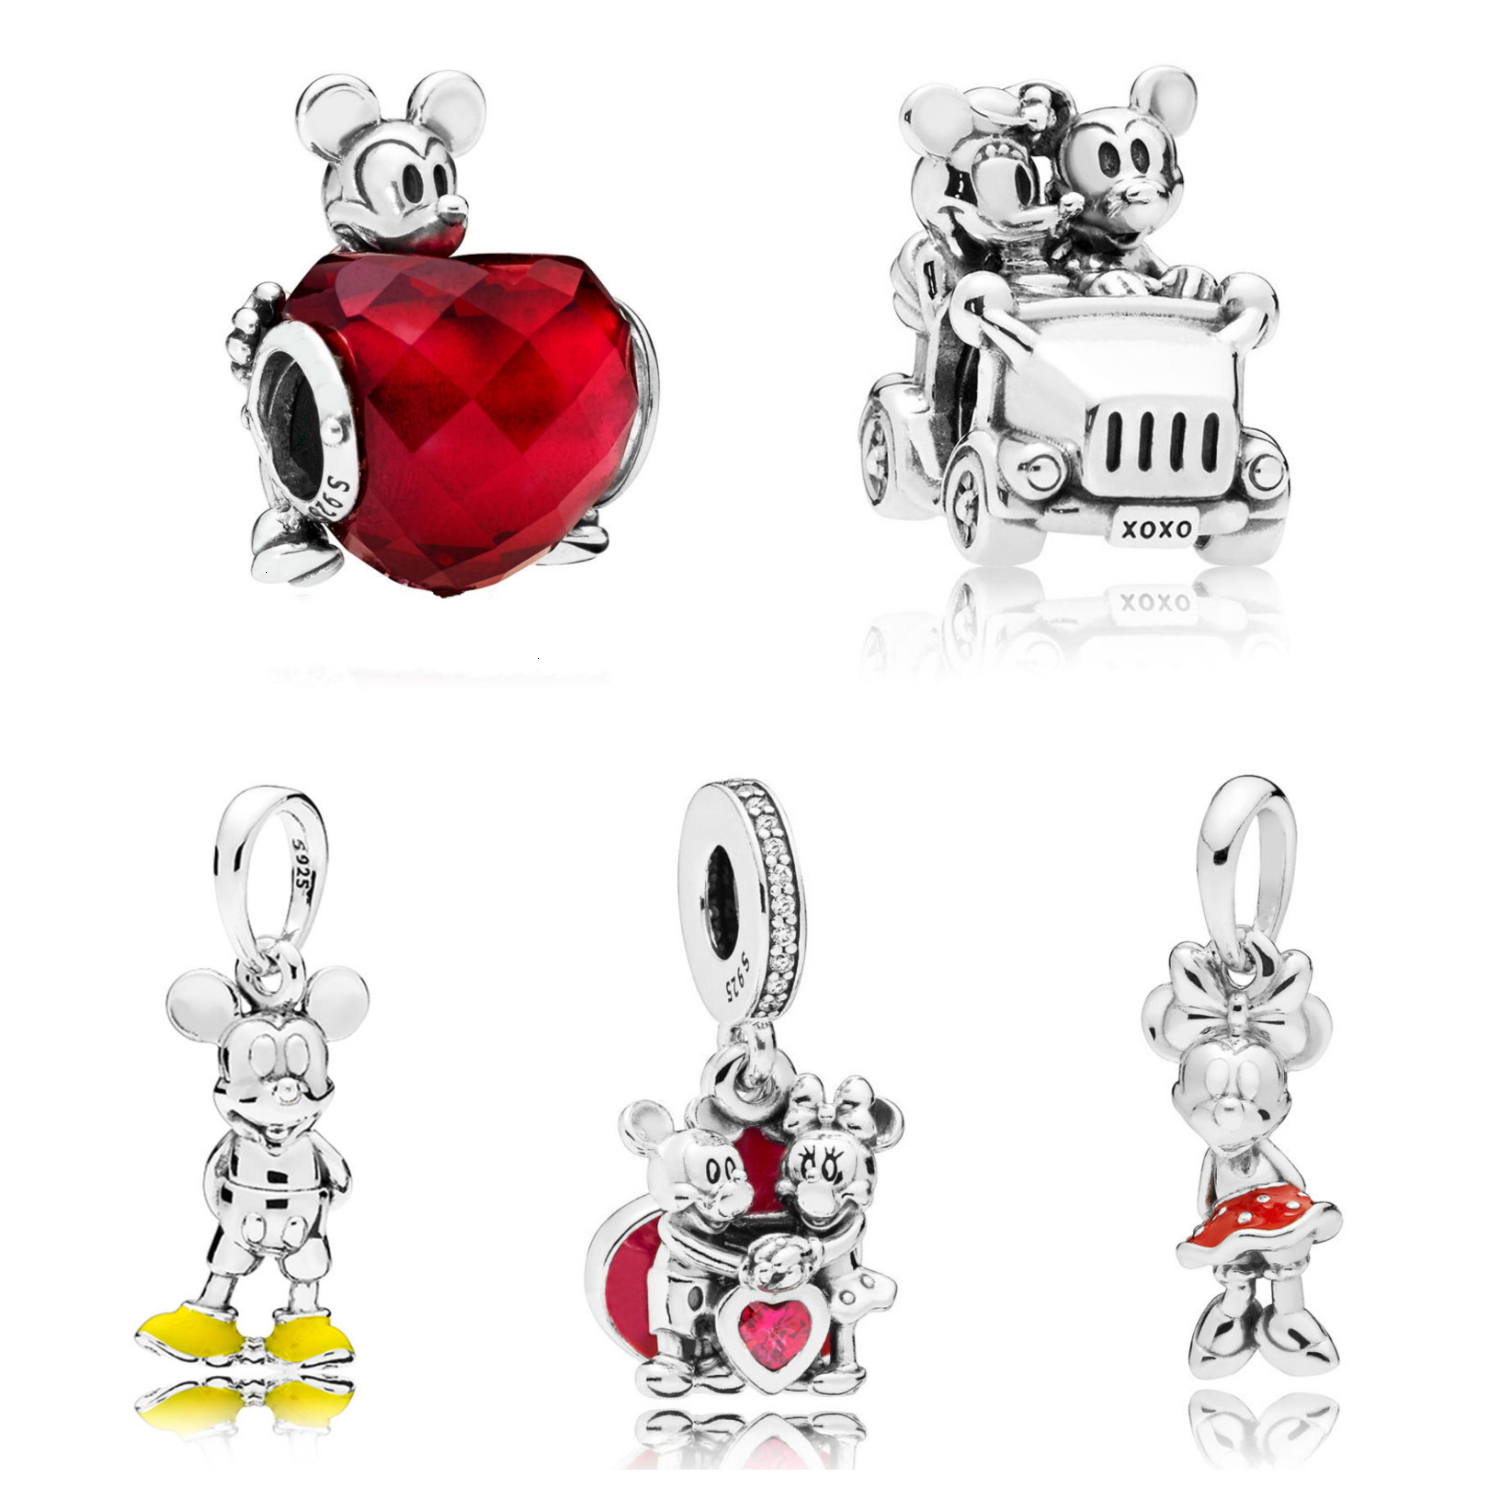 Authentic S925 Sterling Silver Disney Cartoon Cute Mickey Minnie Romantic Love Charm Bead Fit Original Europe Dangle Bracelet